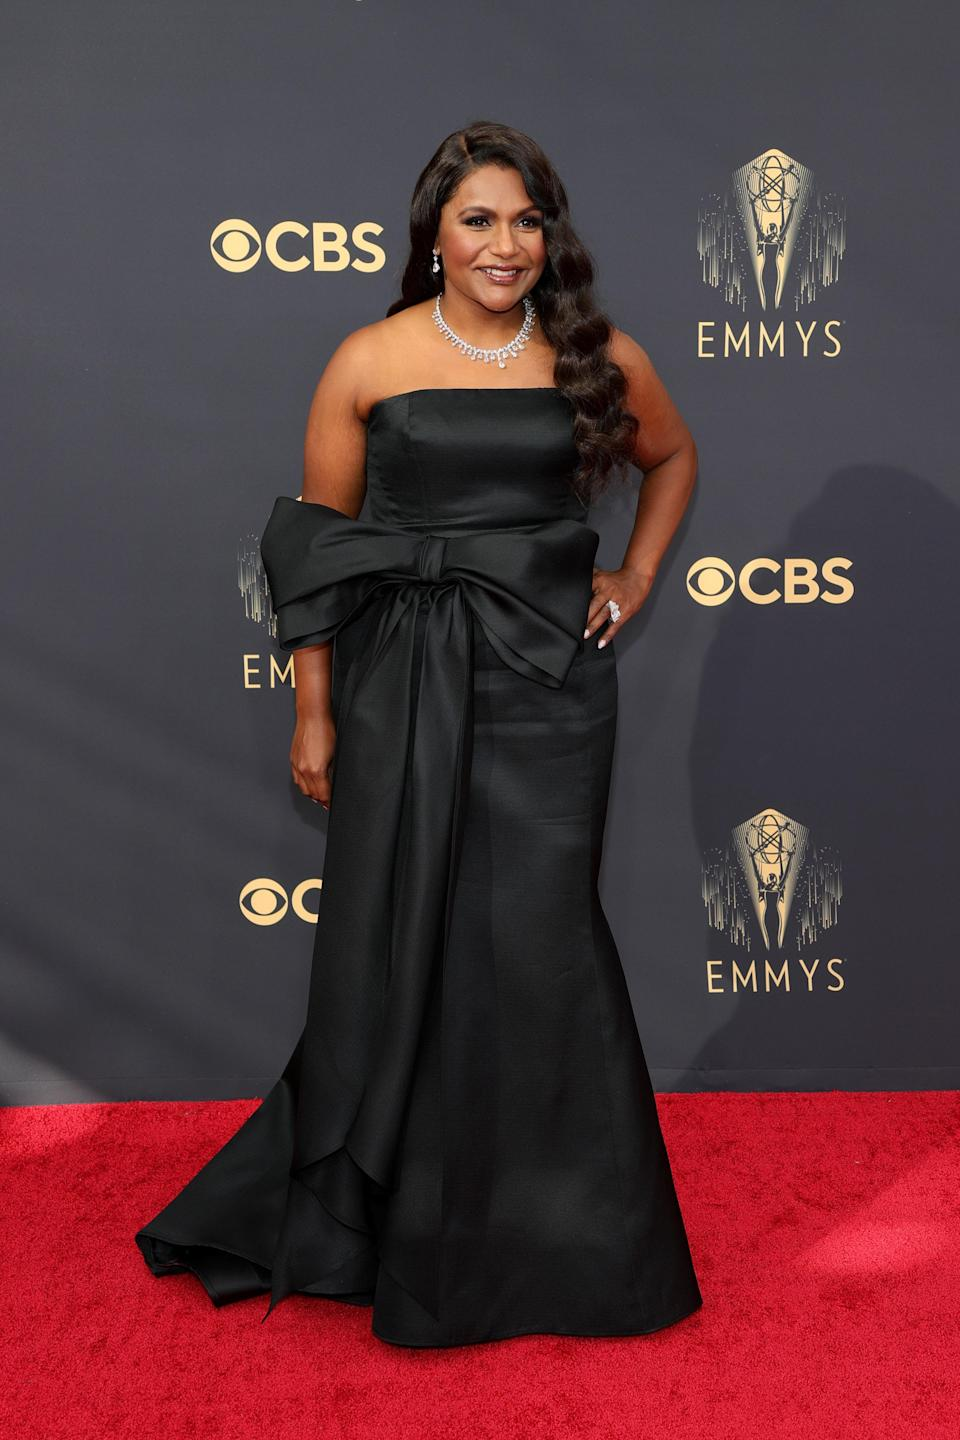 Mindy went for classic glam in a strapless black Carolina Herrera gown with a big bow belt.